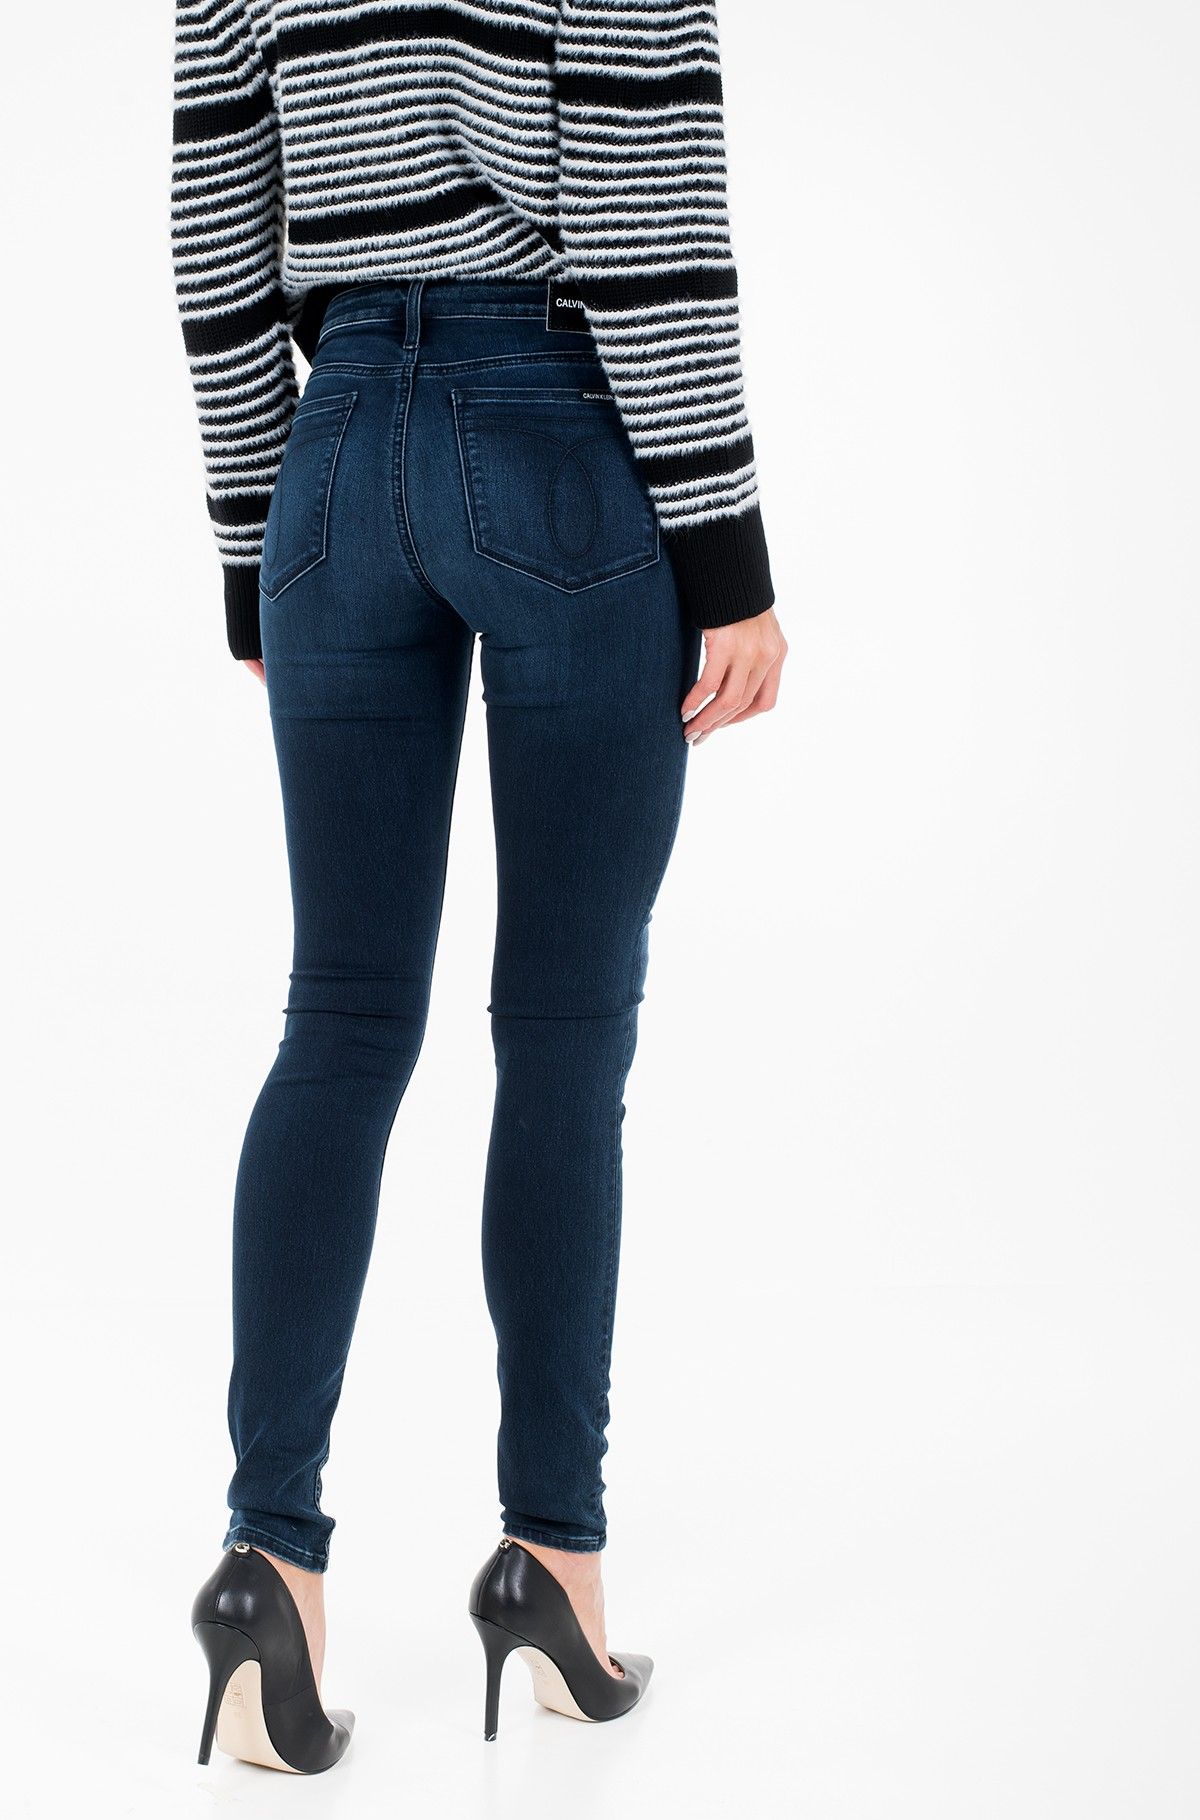 Jeans CKJ 001 SUPER SKINNY-full-2